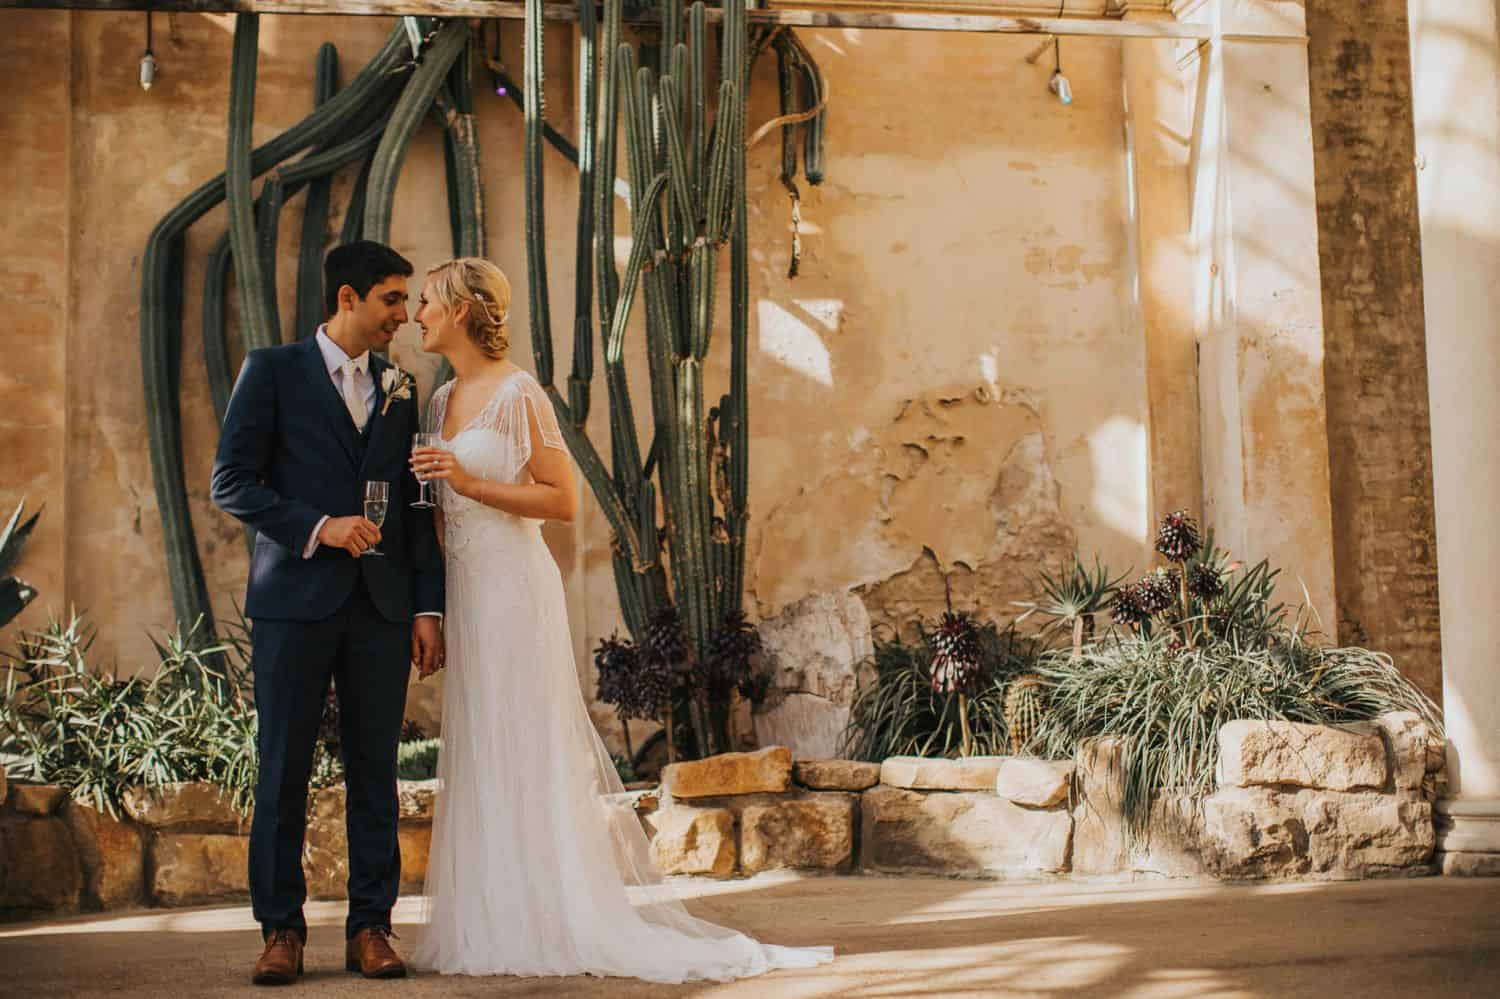 How To Make A Photography Website Your Dream Clients Can't Resist: A bride and groom stand face-to-face, holding champagne in an adobe setting.